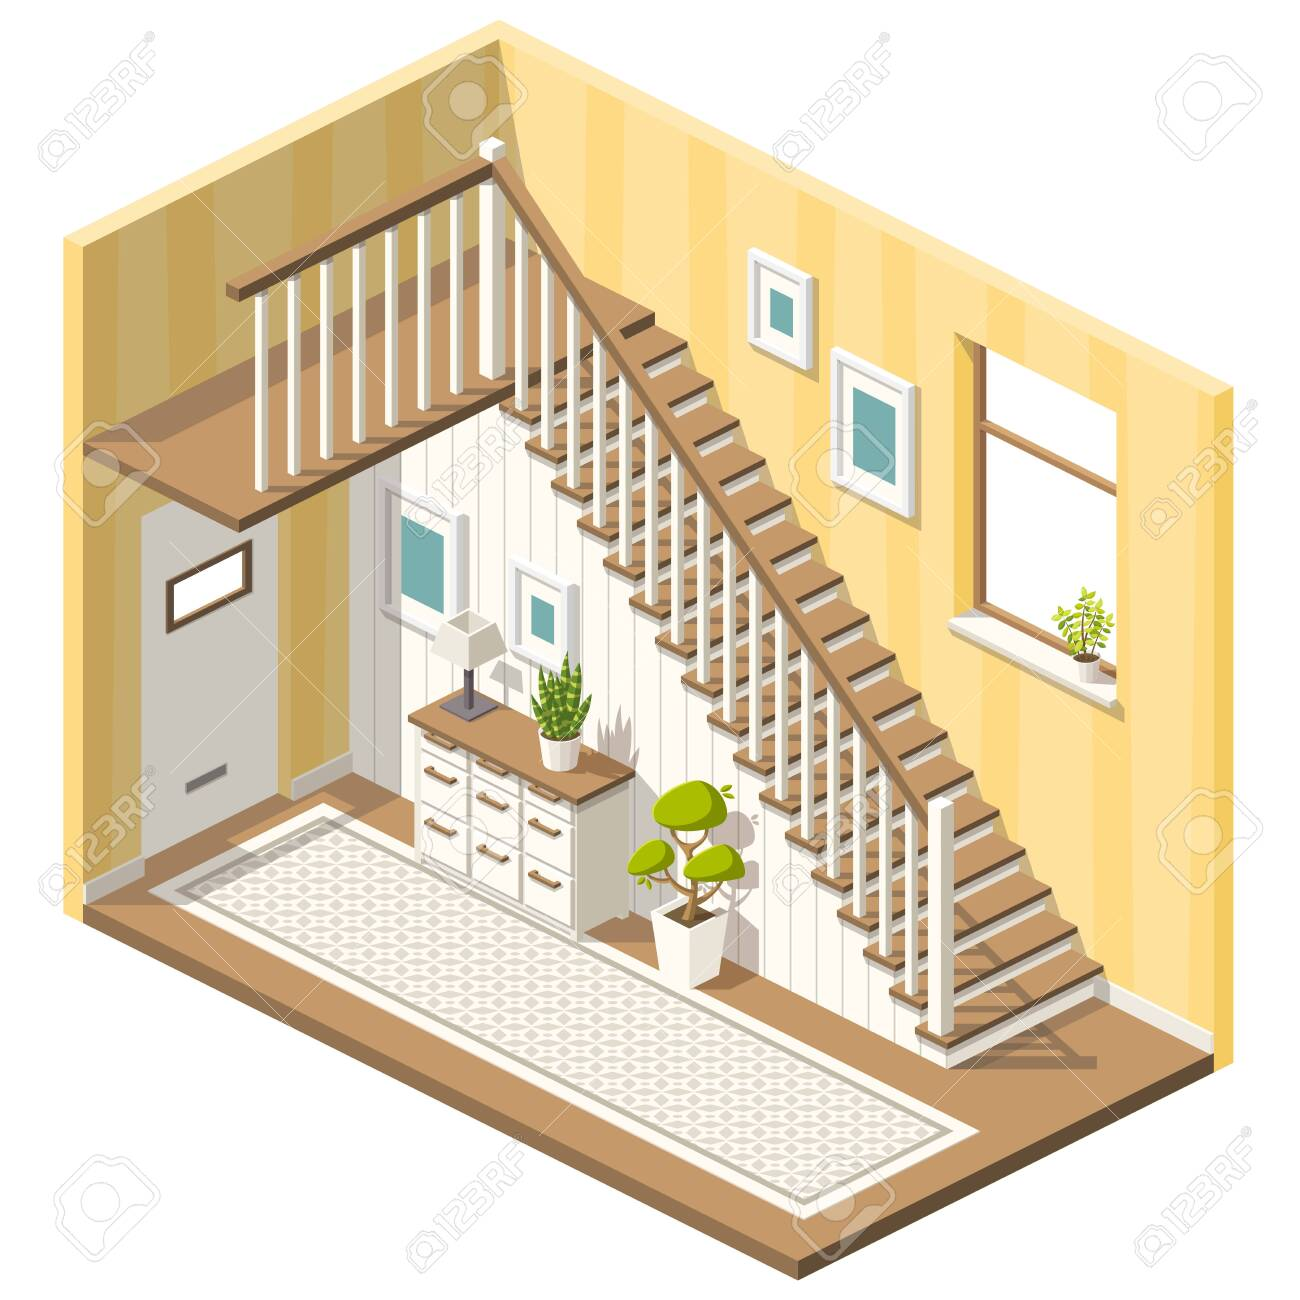 Isometric hall with stairs and furniture. Vector illustration with separate layers. - 146104988